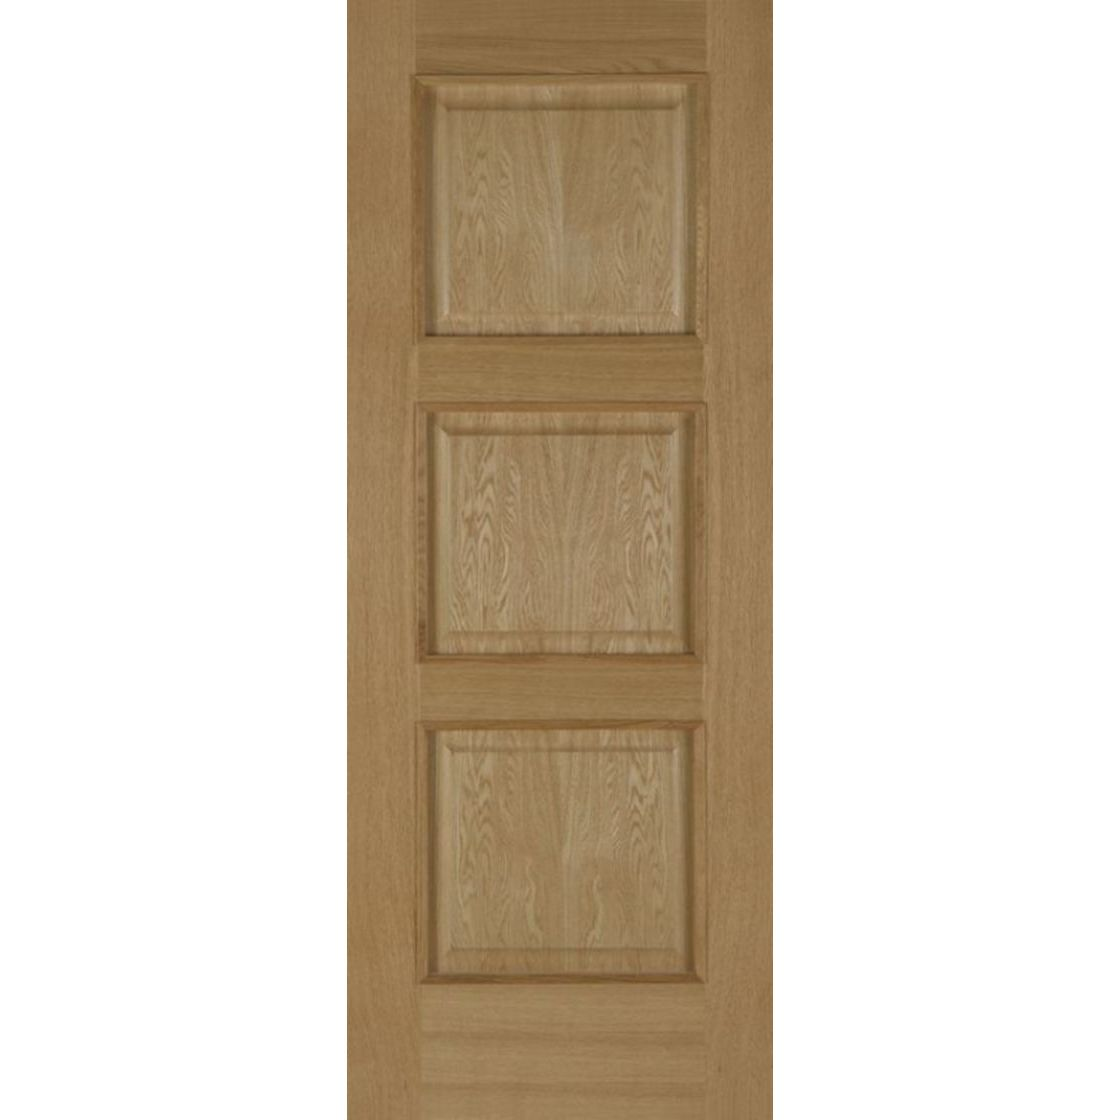 Madrid Oak Door